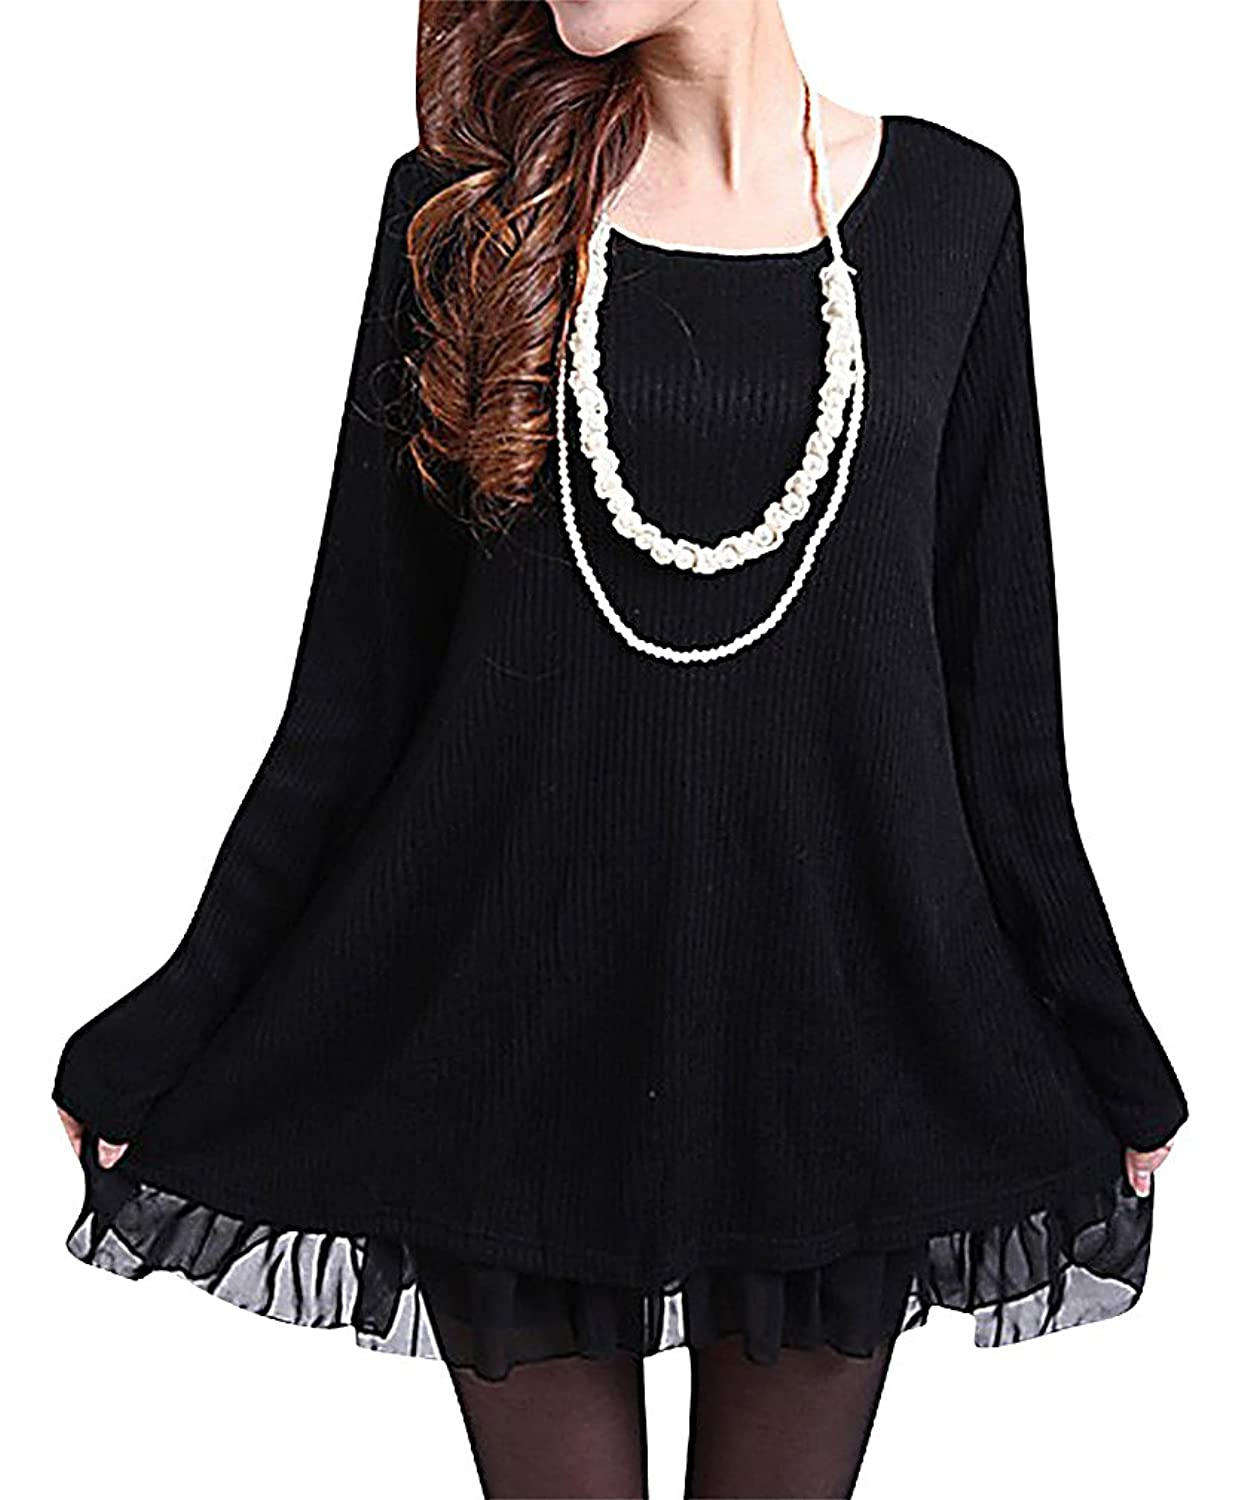 ALLEGRA Women's Stylish Long Sleeves Knitted Loose Fit Sweater Dress Lace Bow